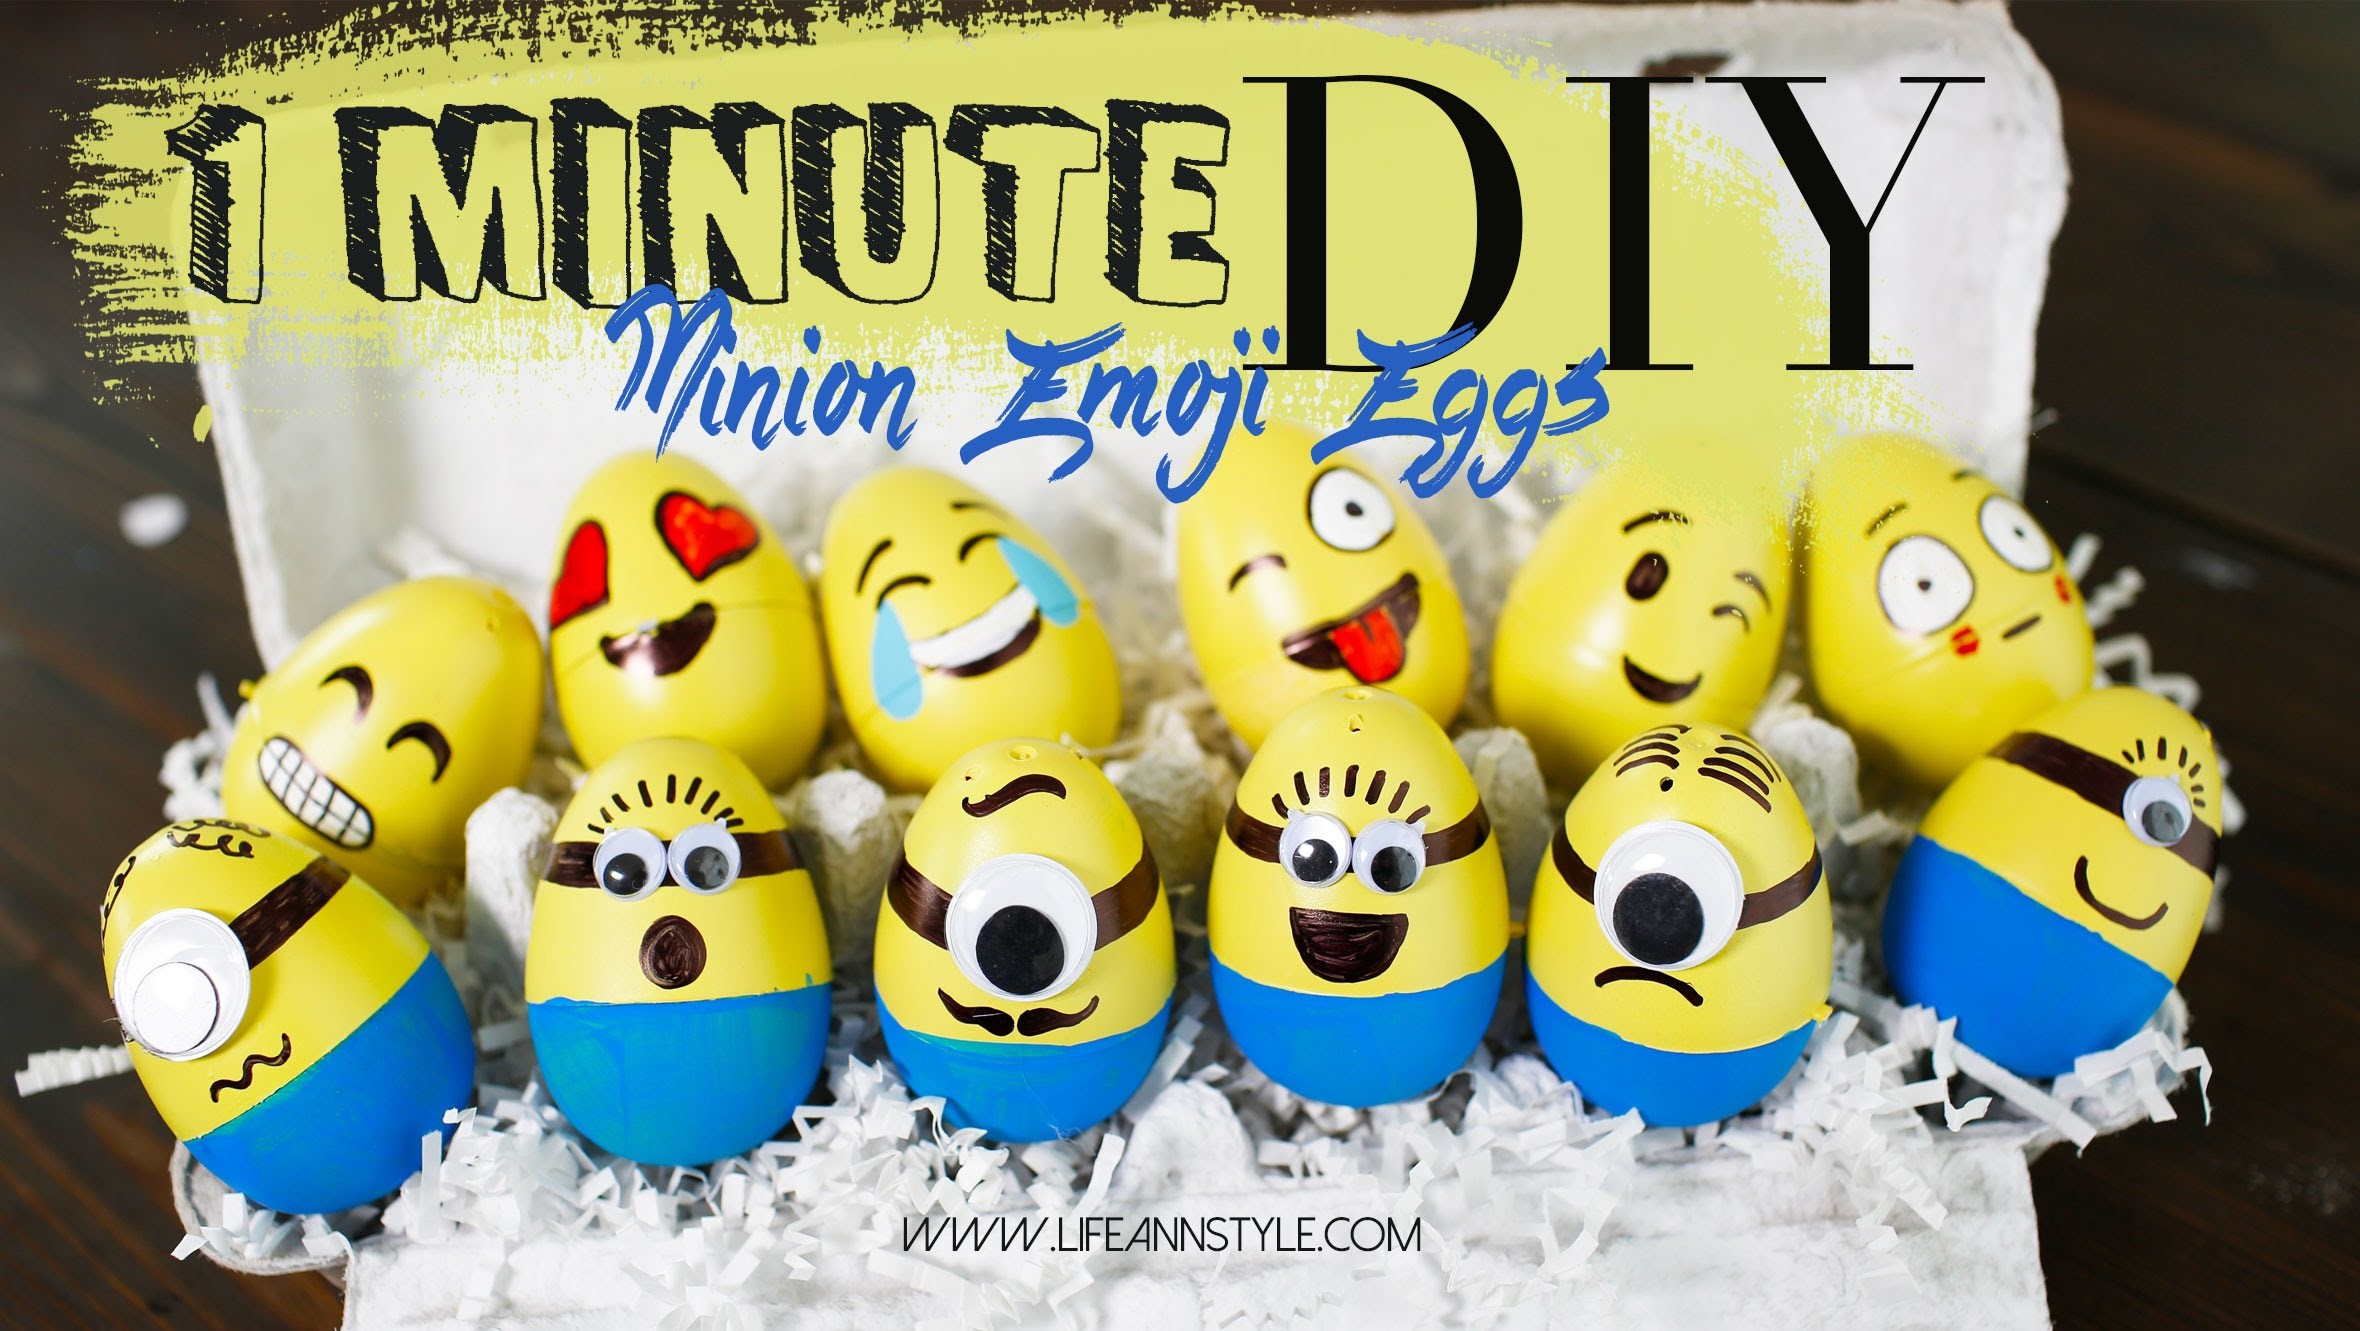 DIY Minion Emoji Decorated Eggs | 1 Minute DIY  | ANNEORSHINE